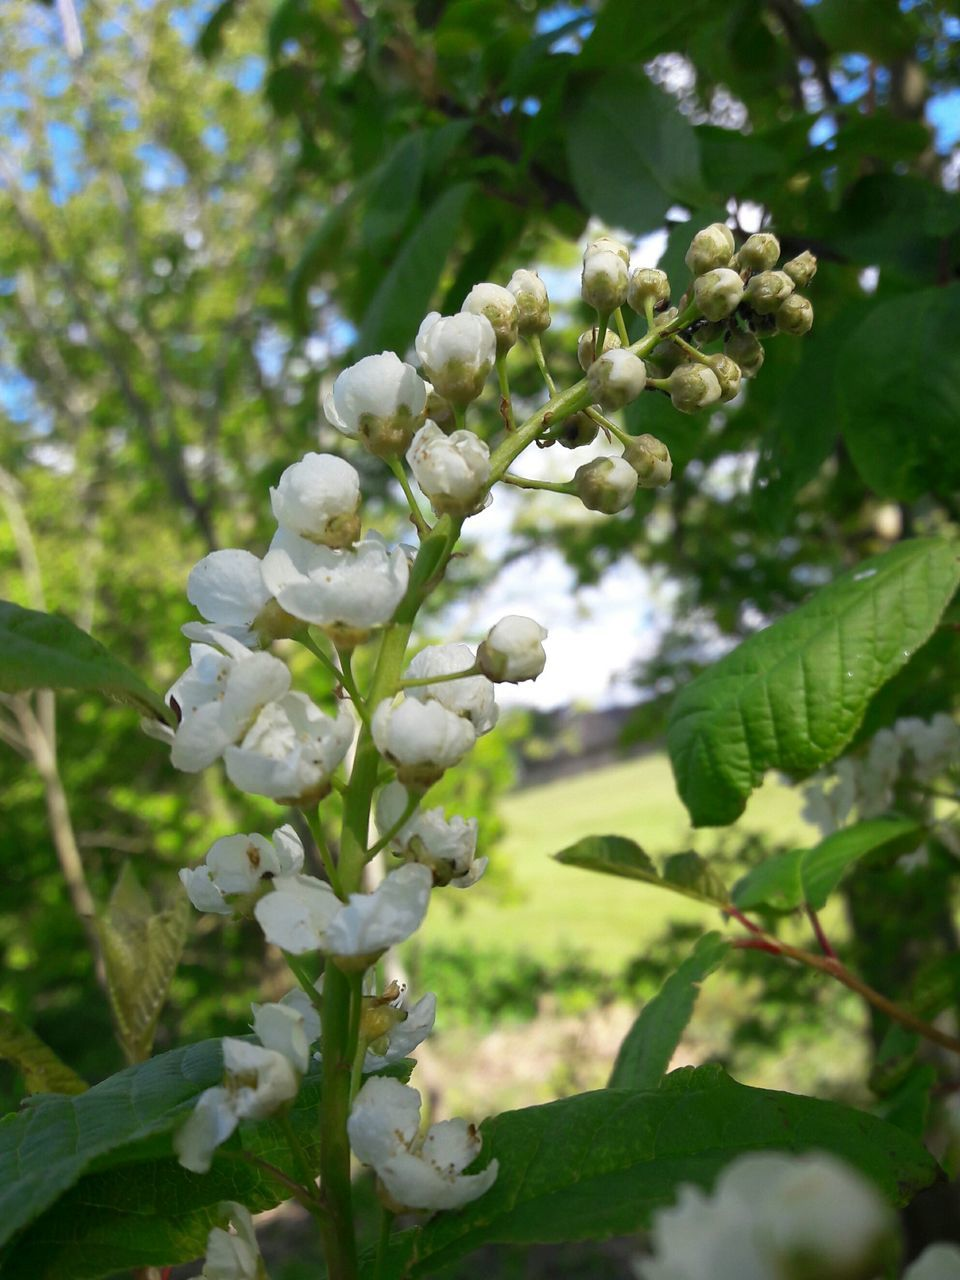 growth, nature, flower, beauty in nature, fragility, tree, white color, blossom, freshness, no people, day, plant, green color, petal, close-up, branch, springtime, outdoors, leaf, blooming, flower head